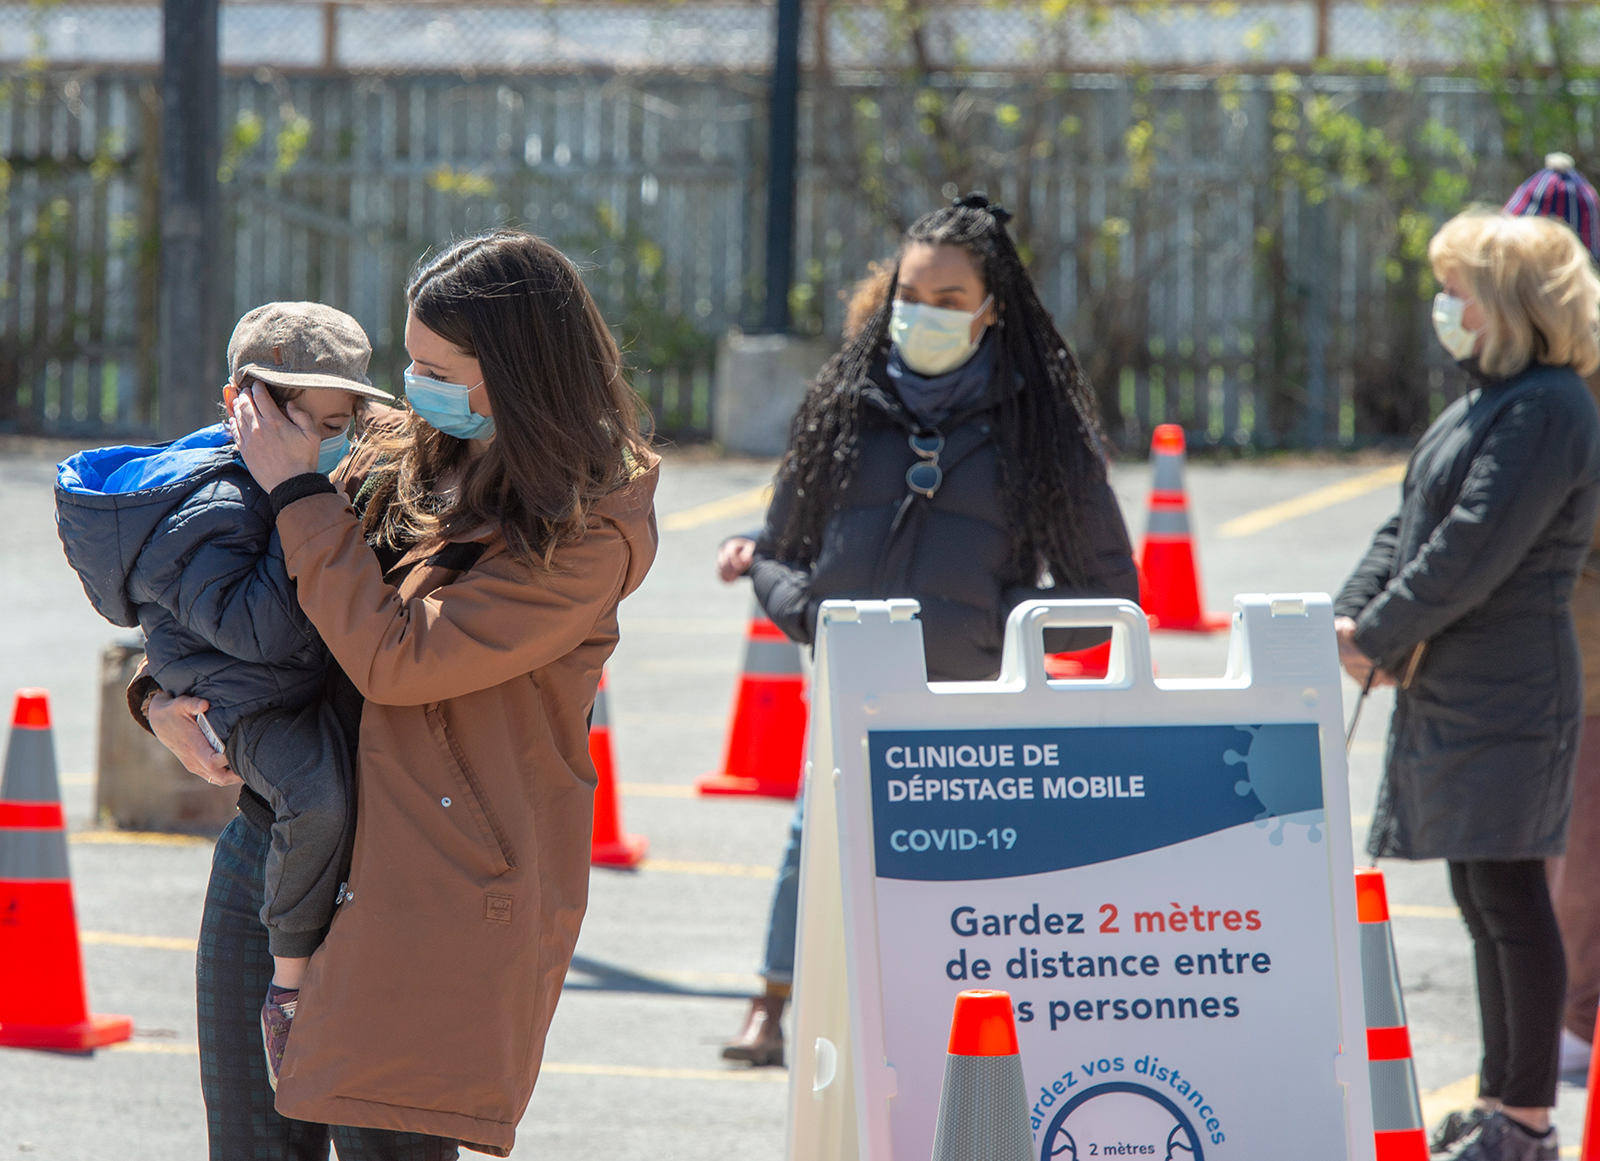 People wait in line at a mobile Covid-19 testing clinic on May 12, in Montreal.